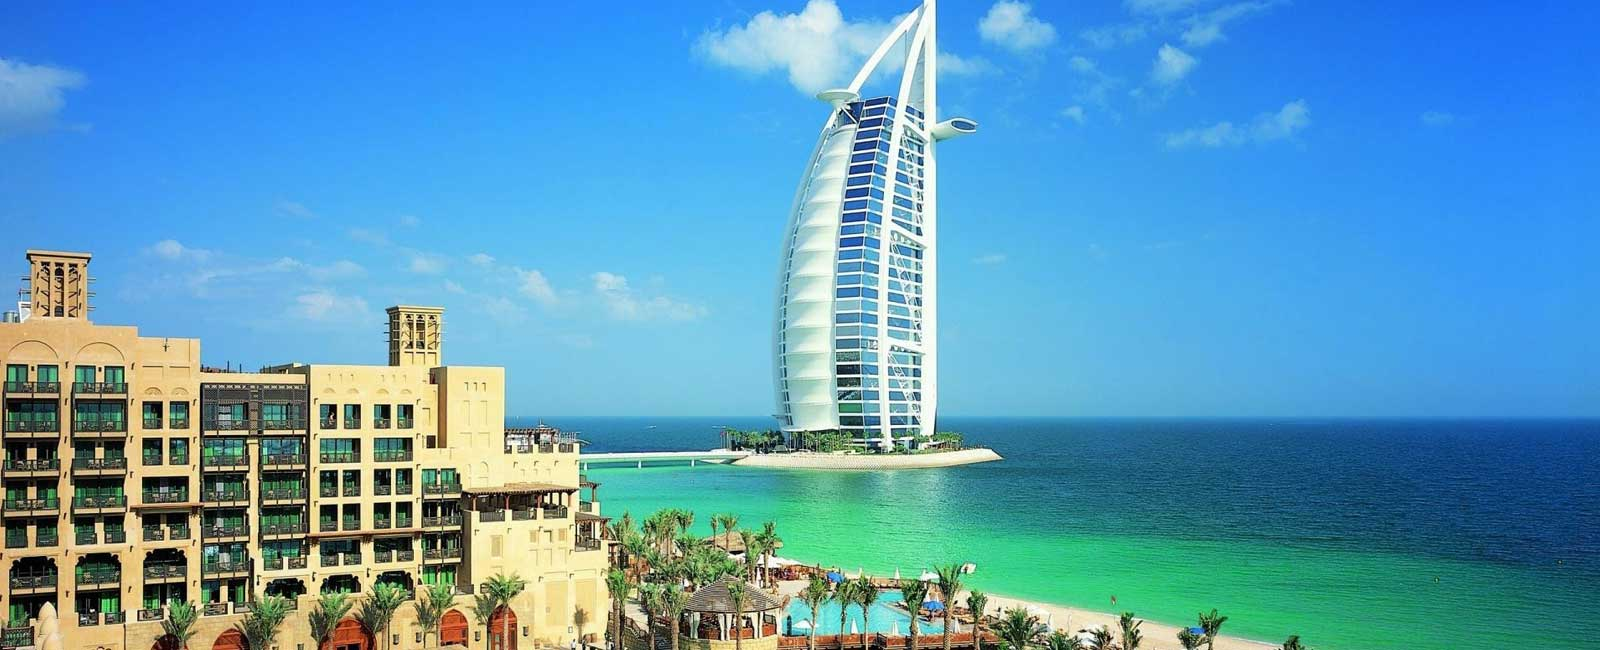 Cheap Ticket To Dubai